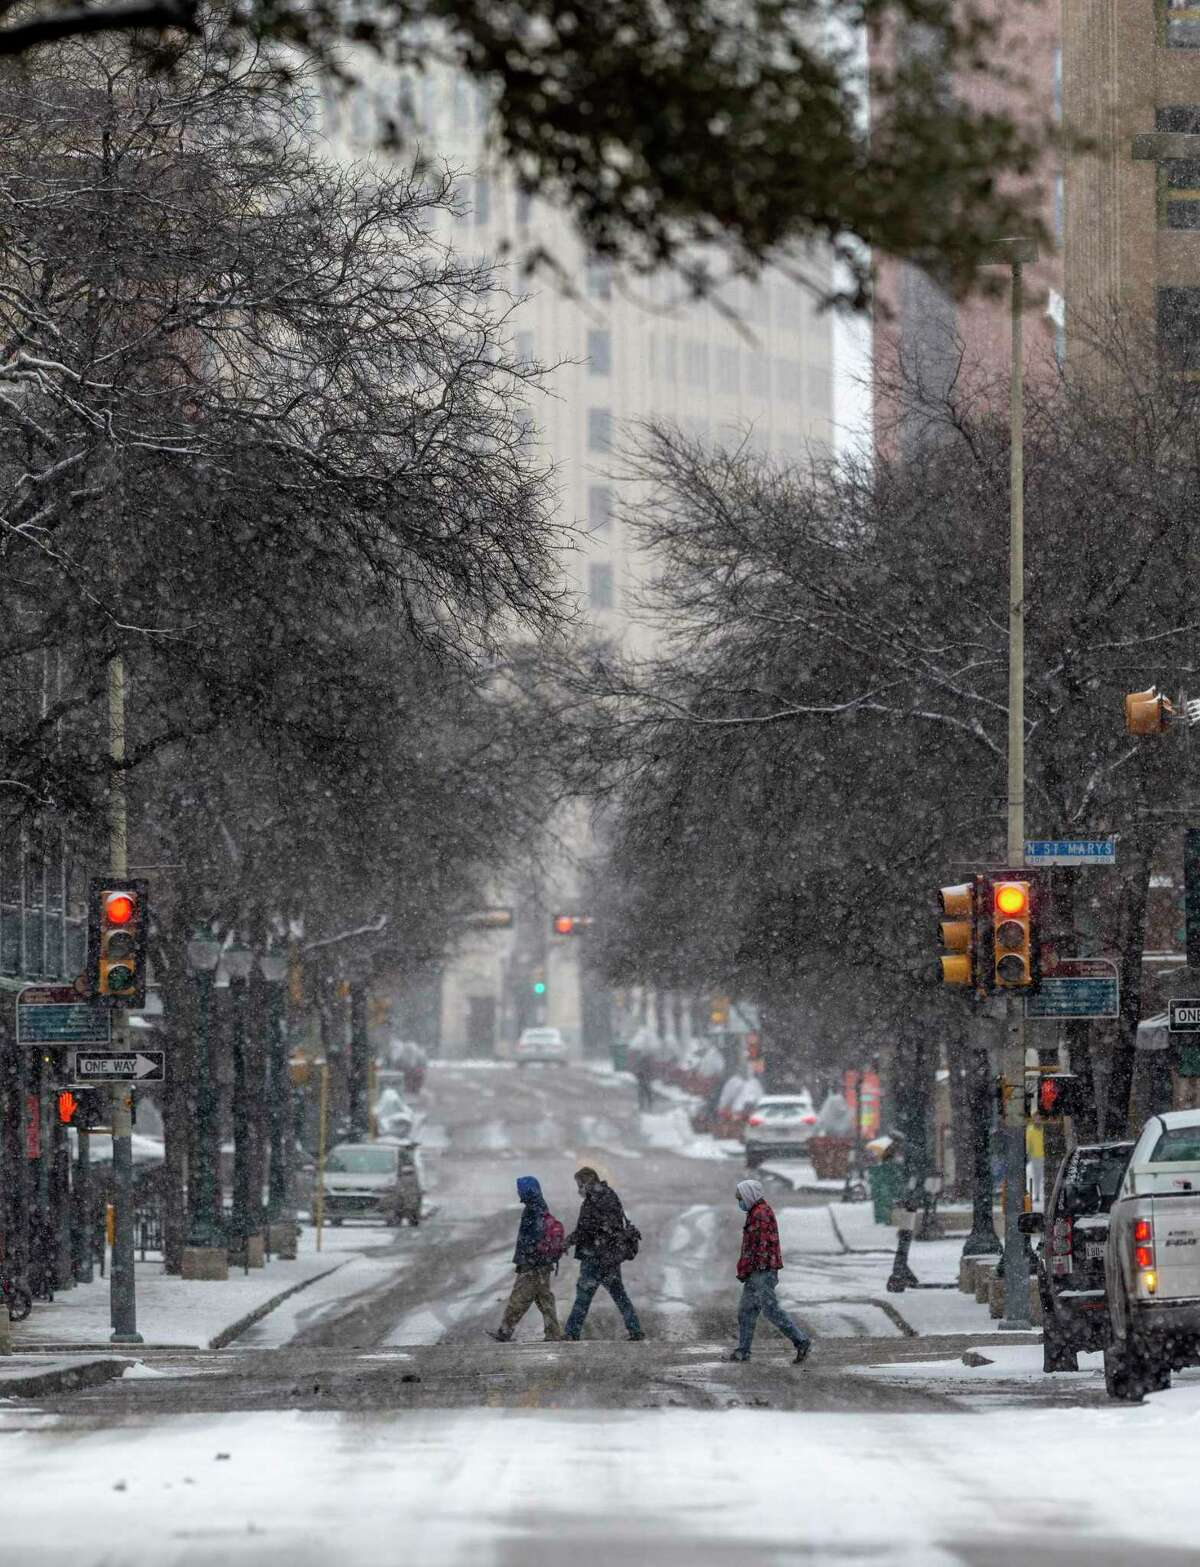 People cross Houston Street Thursday, Feb. 18, 2021 as snow grips the city for the second time in a week, the result of an arctic air mass that sent temperatures plummeting and resulted in rolling blackouts. At one point about 1/3 of all CPS Energy customers were without electricity.